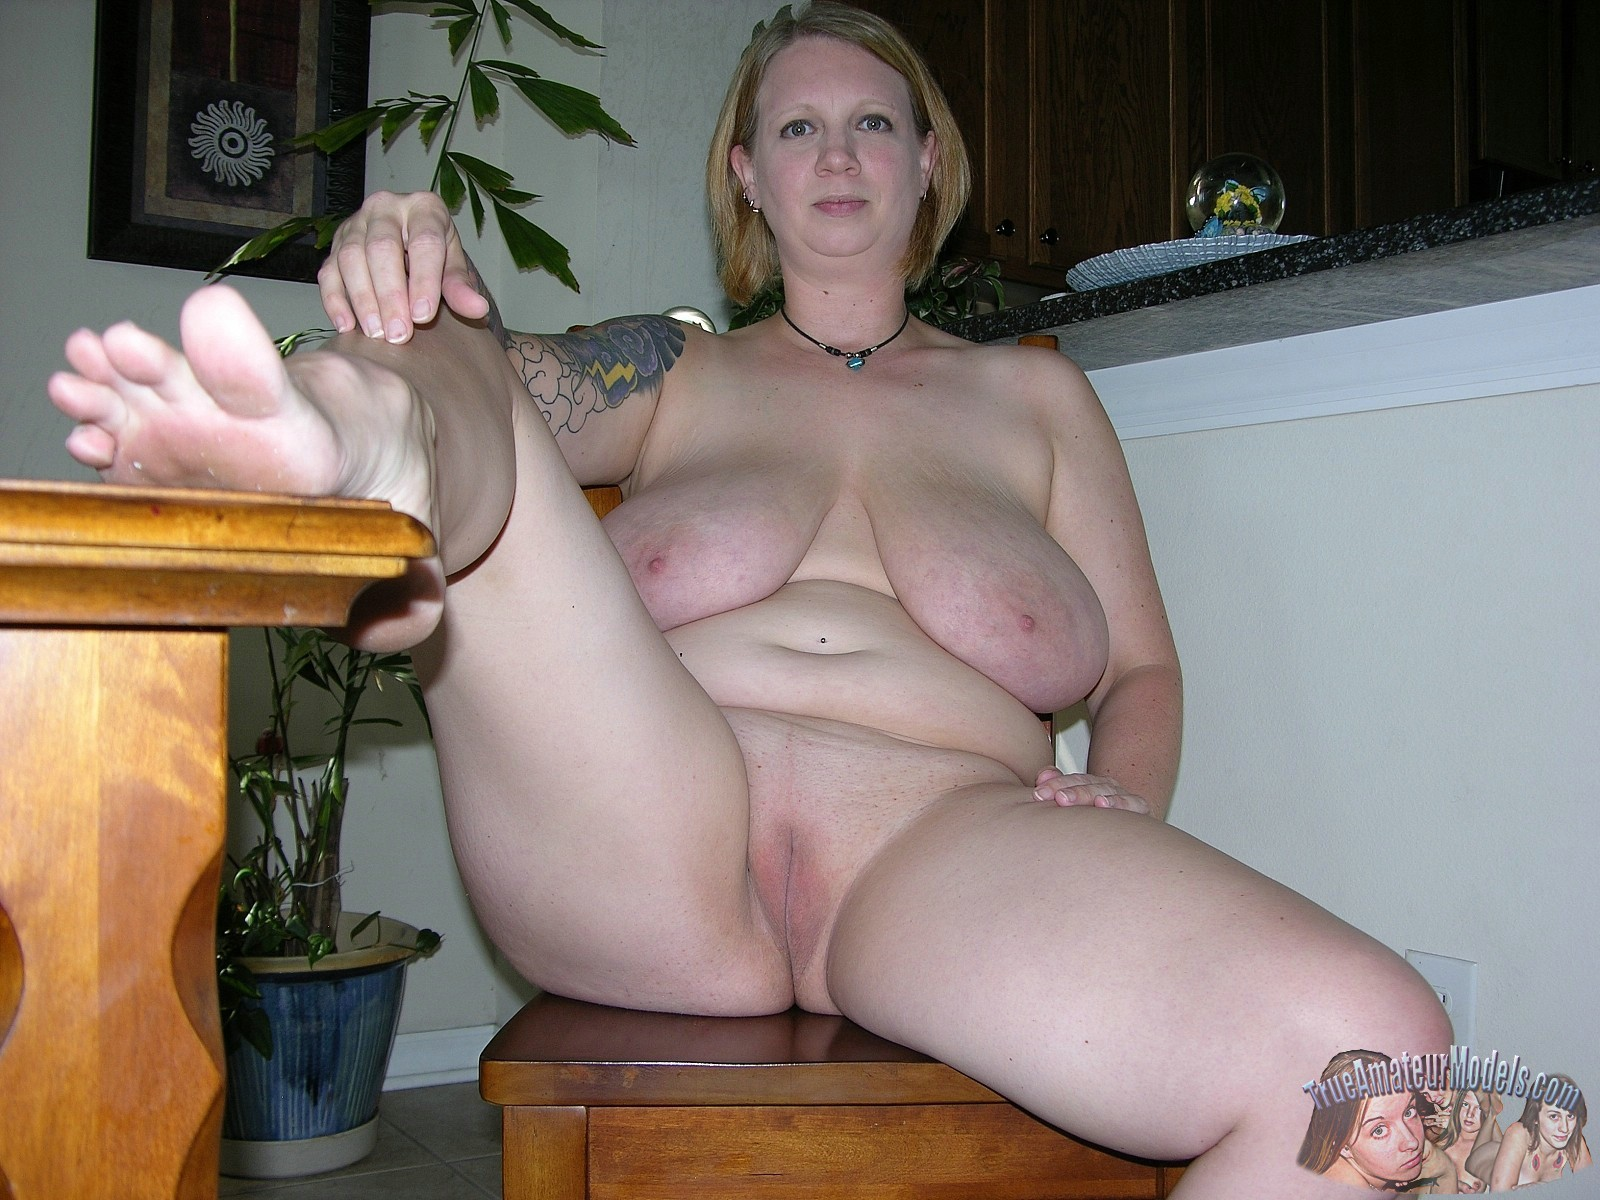 Girl sitting on couch nude